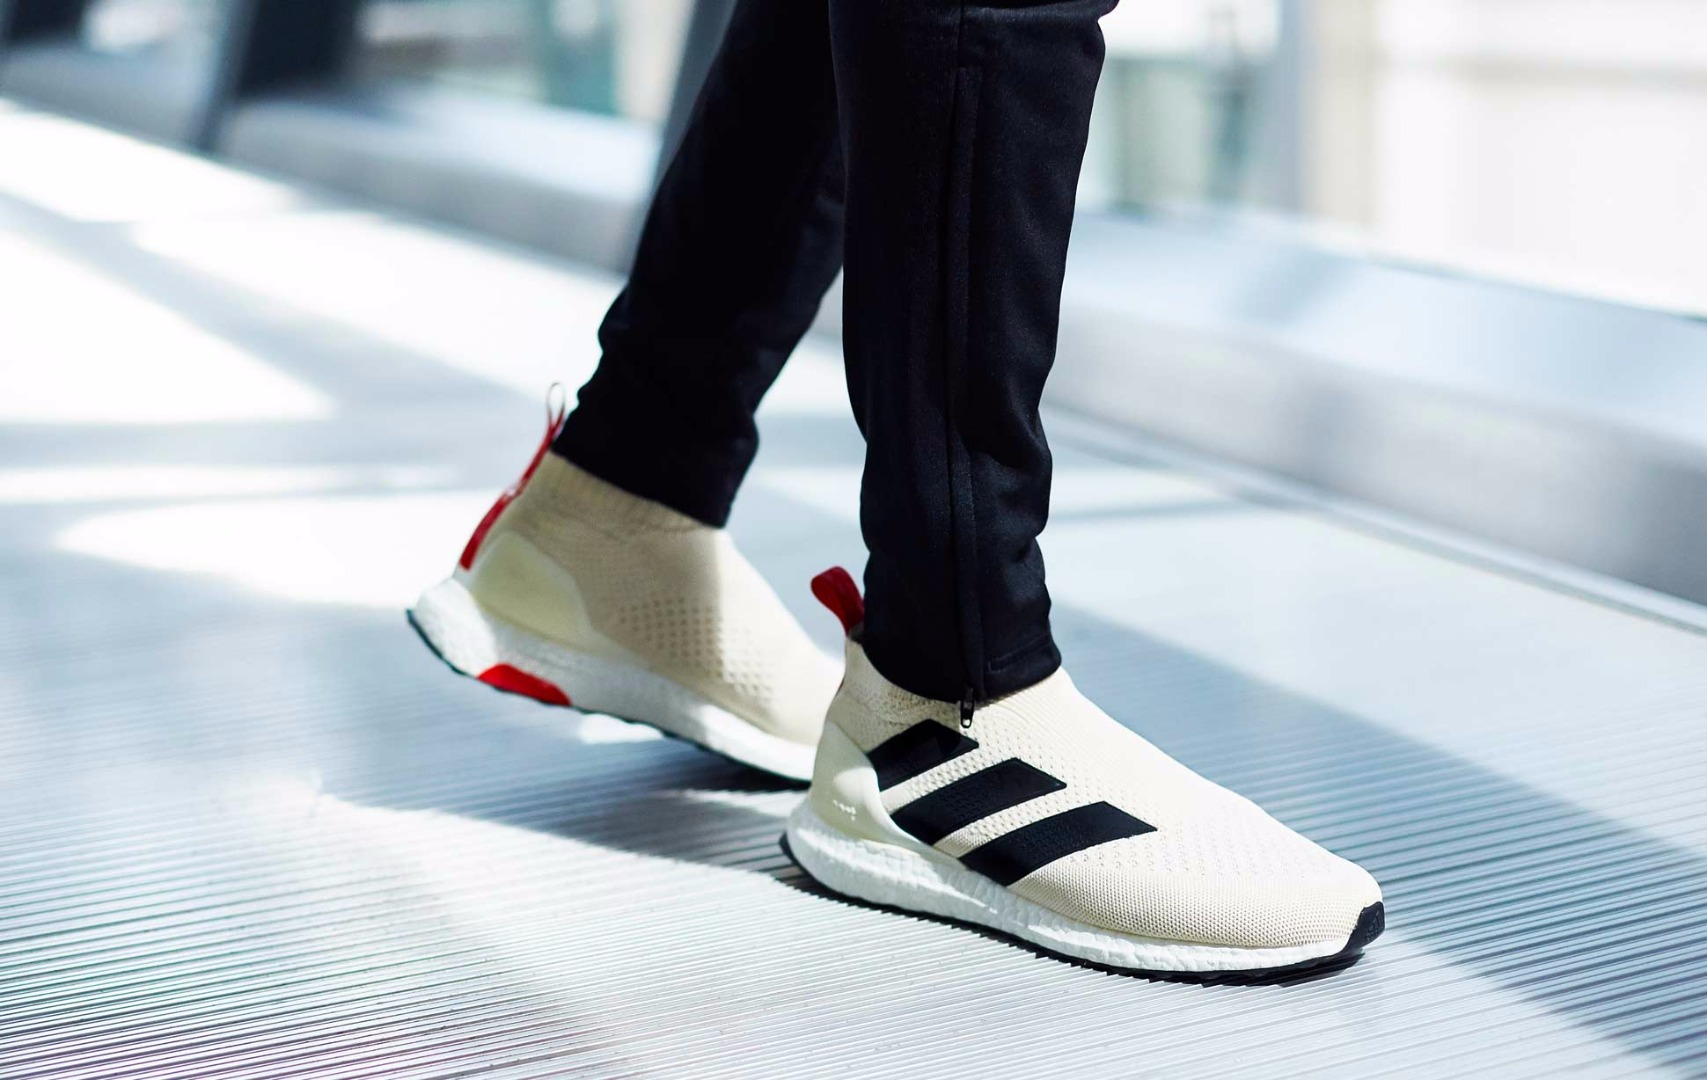 pretty nice 07da2 1627d adidas ACE 16+ UltraBOOST Champagne Shoes - SoccerBible.